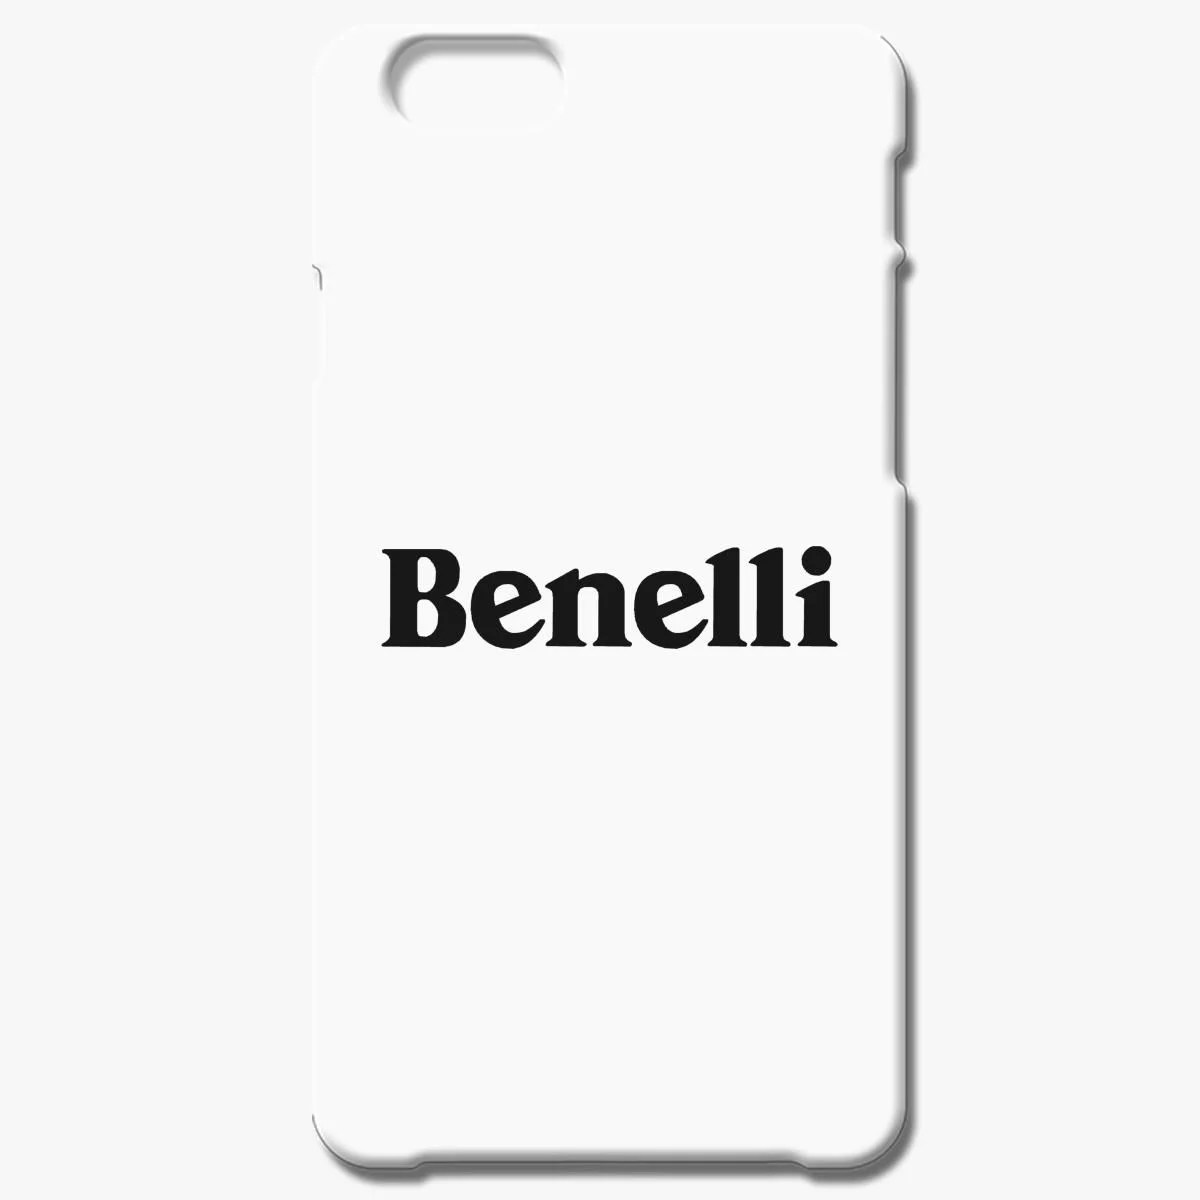 Benelli Motorcycle Logo Iphone 6 6s Plus Case